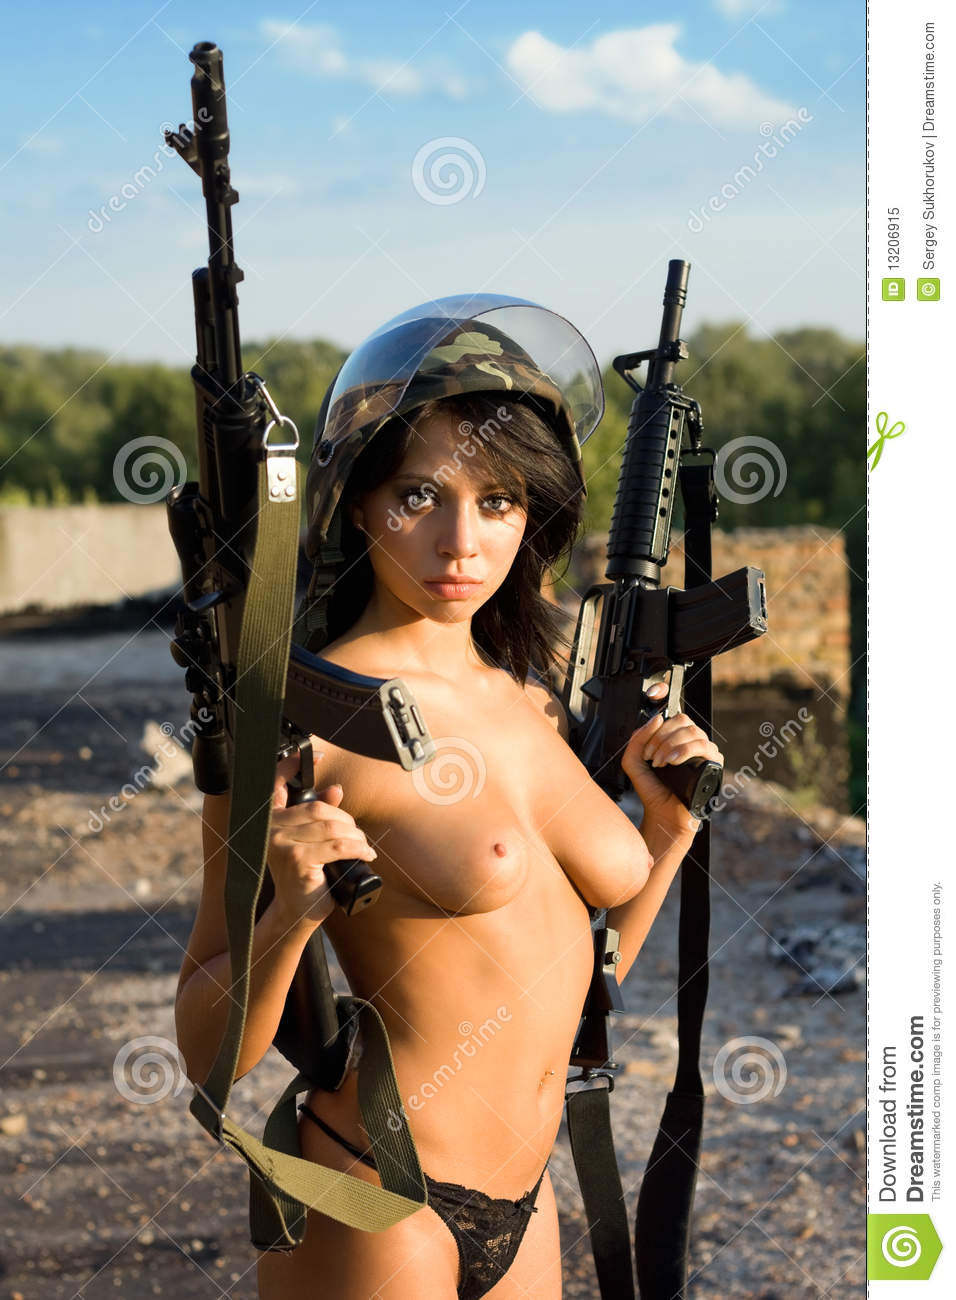 Congratulate, nude girl with a gun